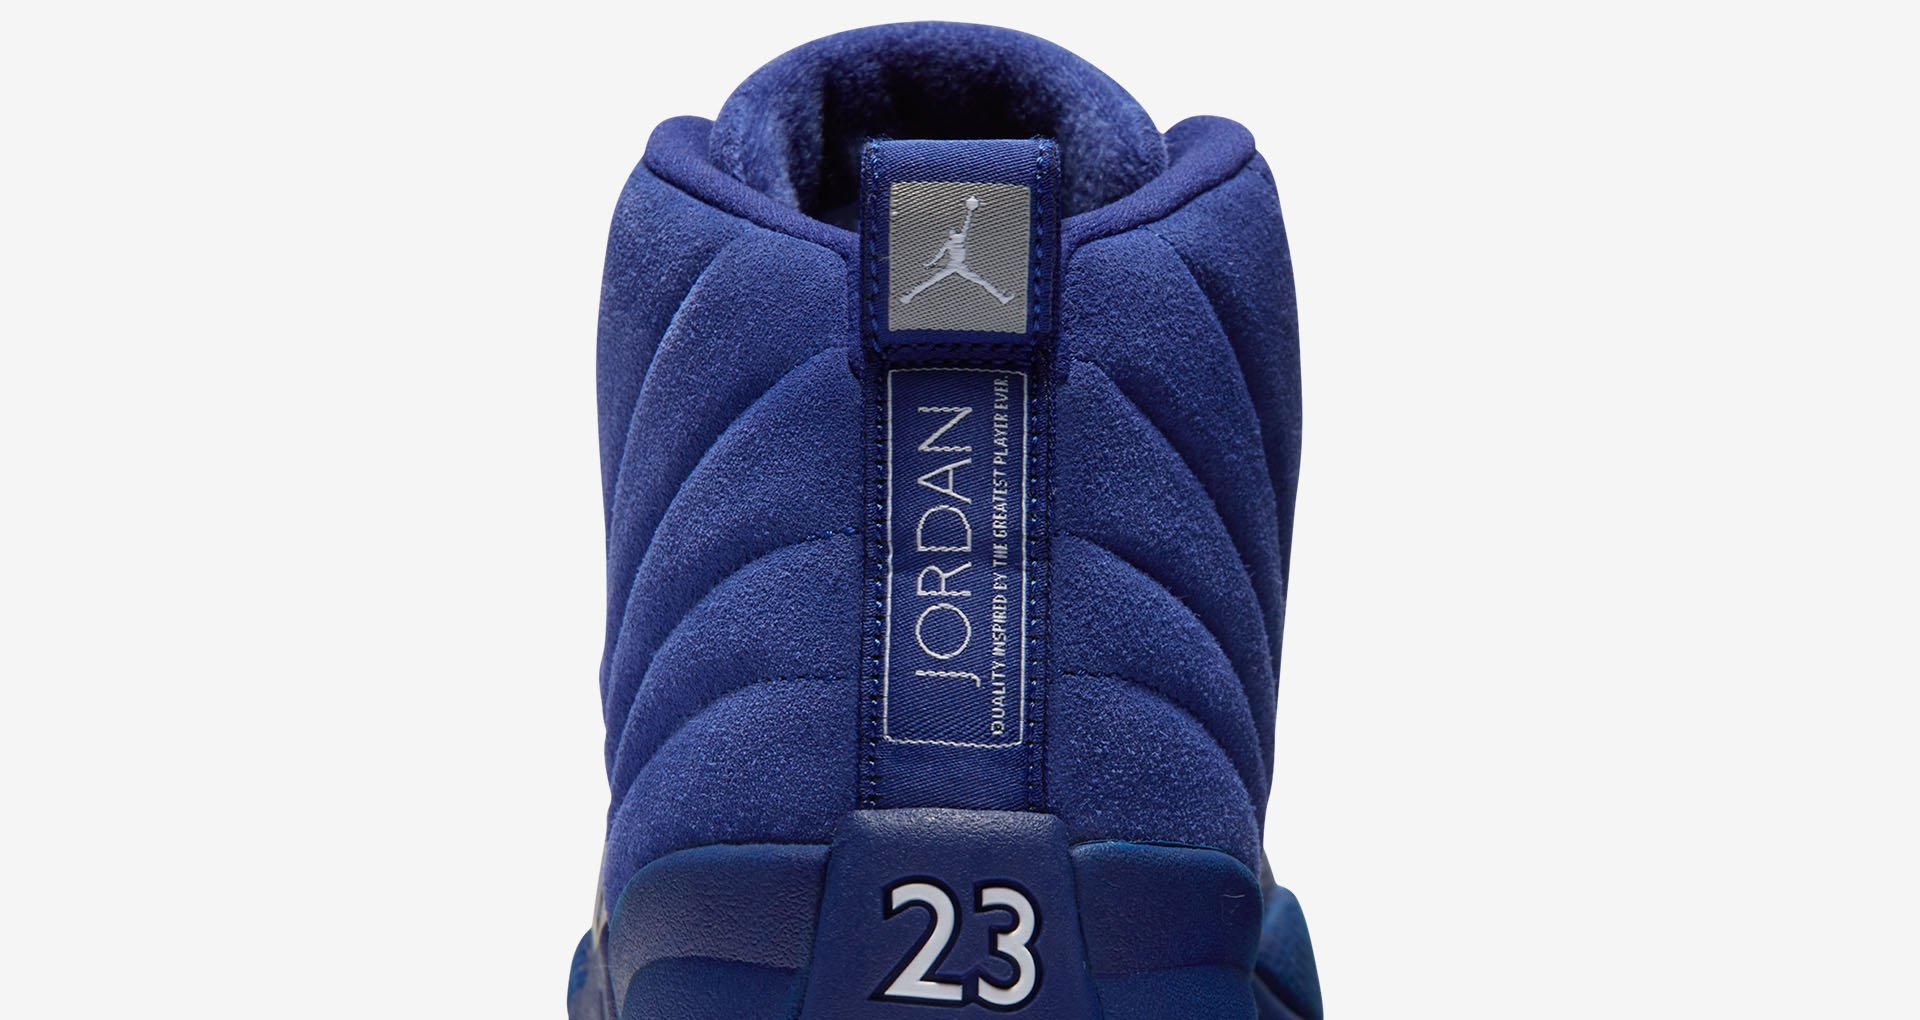 online store 70588 e7eb1 Nike Air Jordan Retro 12 XII Size 5 Y (GS) Deep Royal Blue Suede 163265-400   New